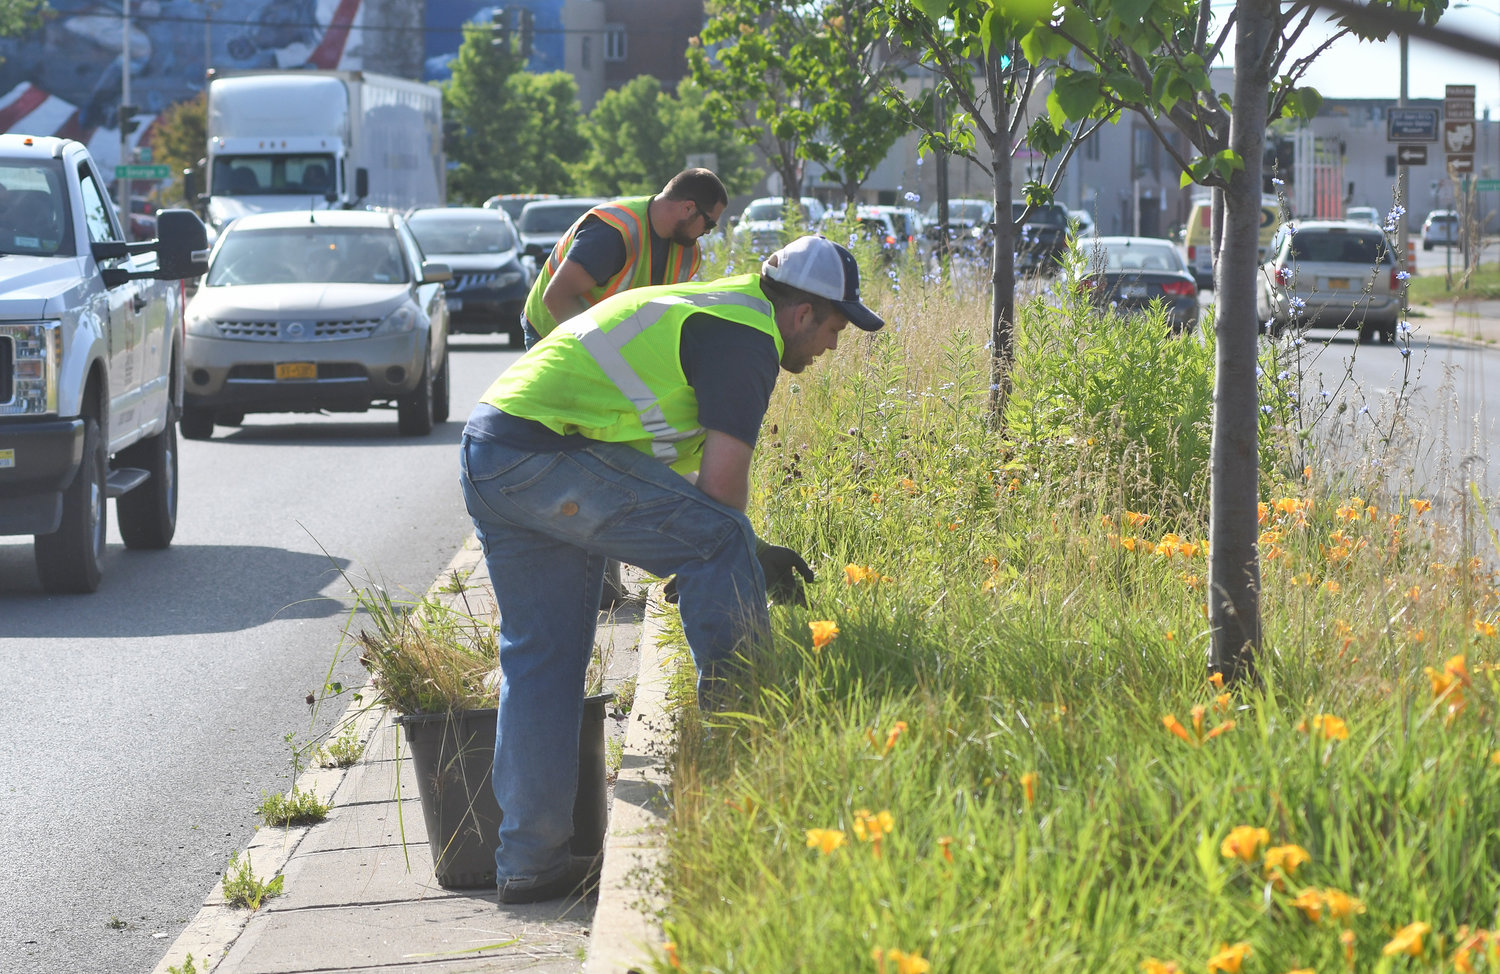 TIDYING UP — City employees Mike Barrett and Billy DiPaolo pull weeds from amidst the trees and flowers on a median on Erie Boulevard West today. The city maintains the medians as part of its ongoing beautification efforts across Rome.